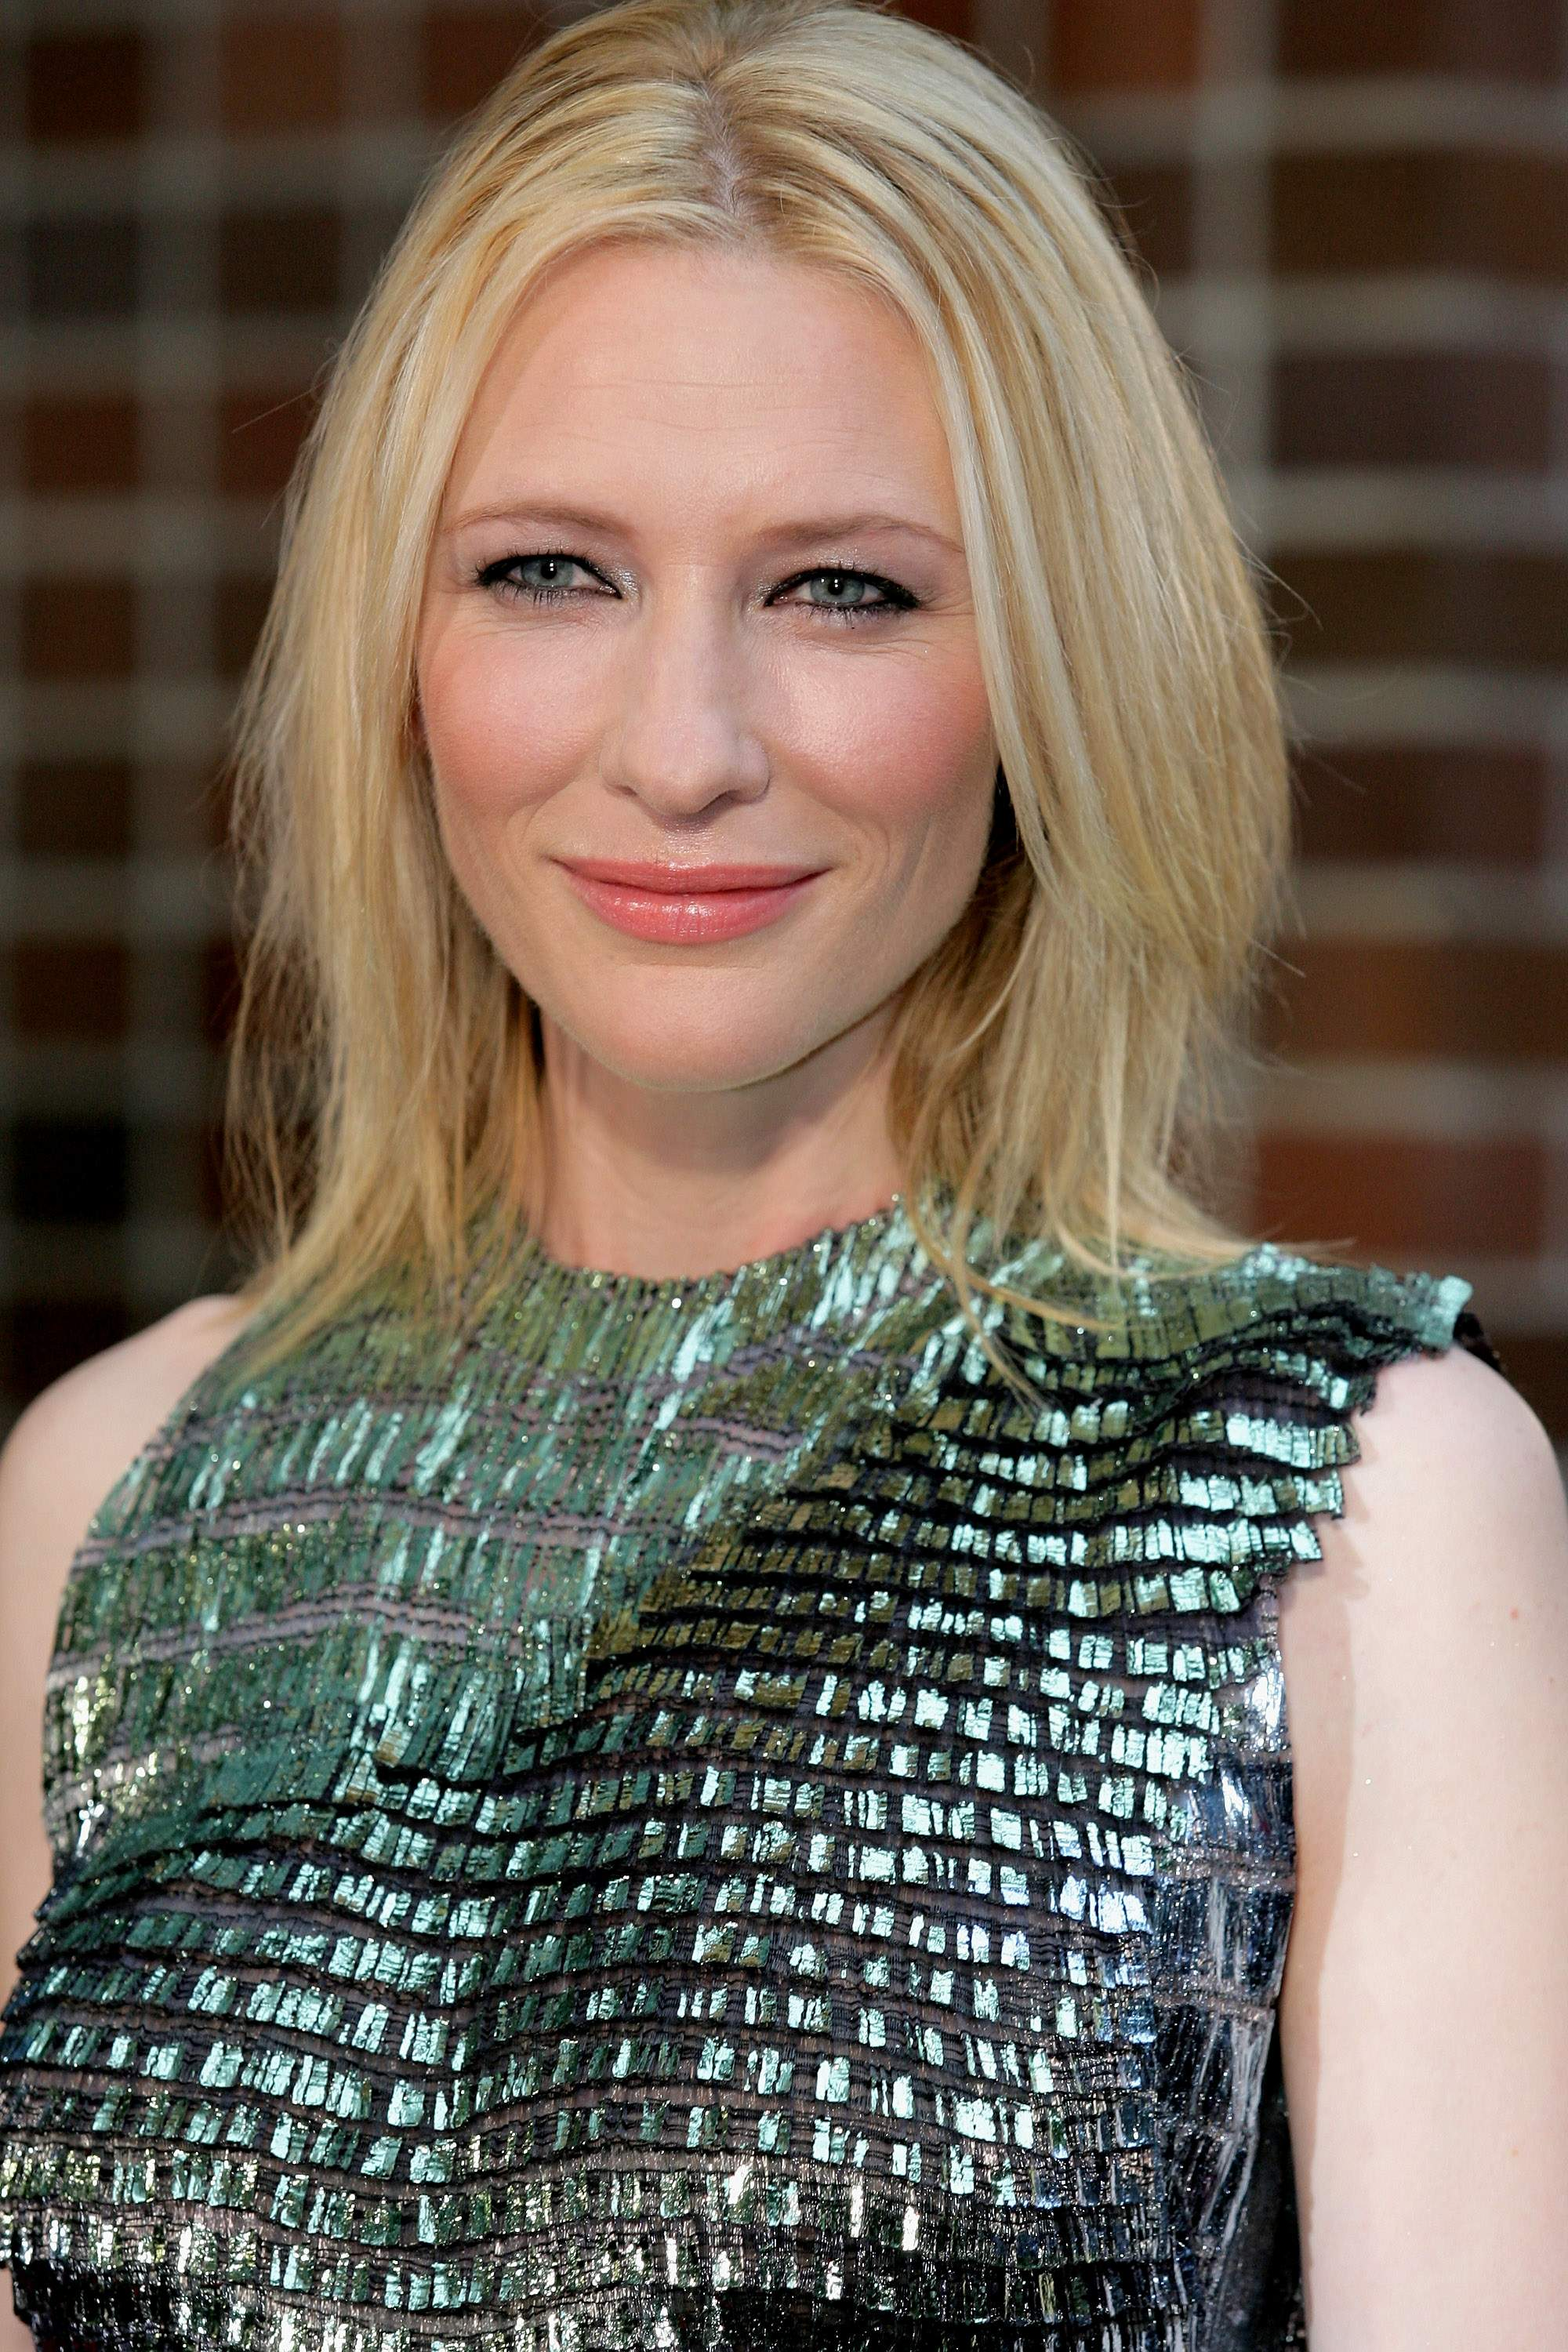 02464_cate-blanchett-the-curious-case-of-benjamin-button021_122_343lo.jpg